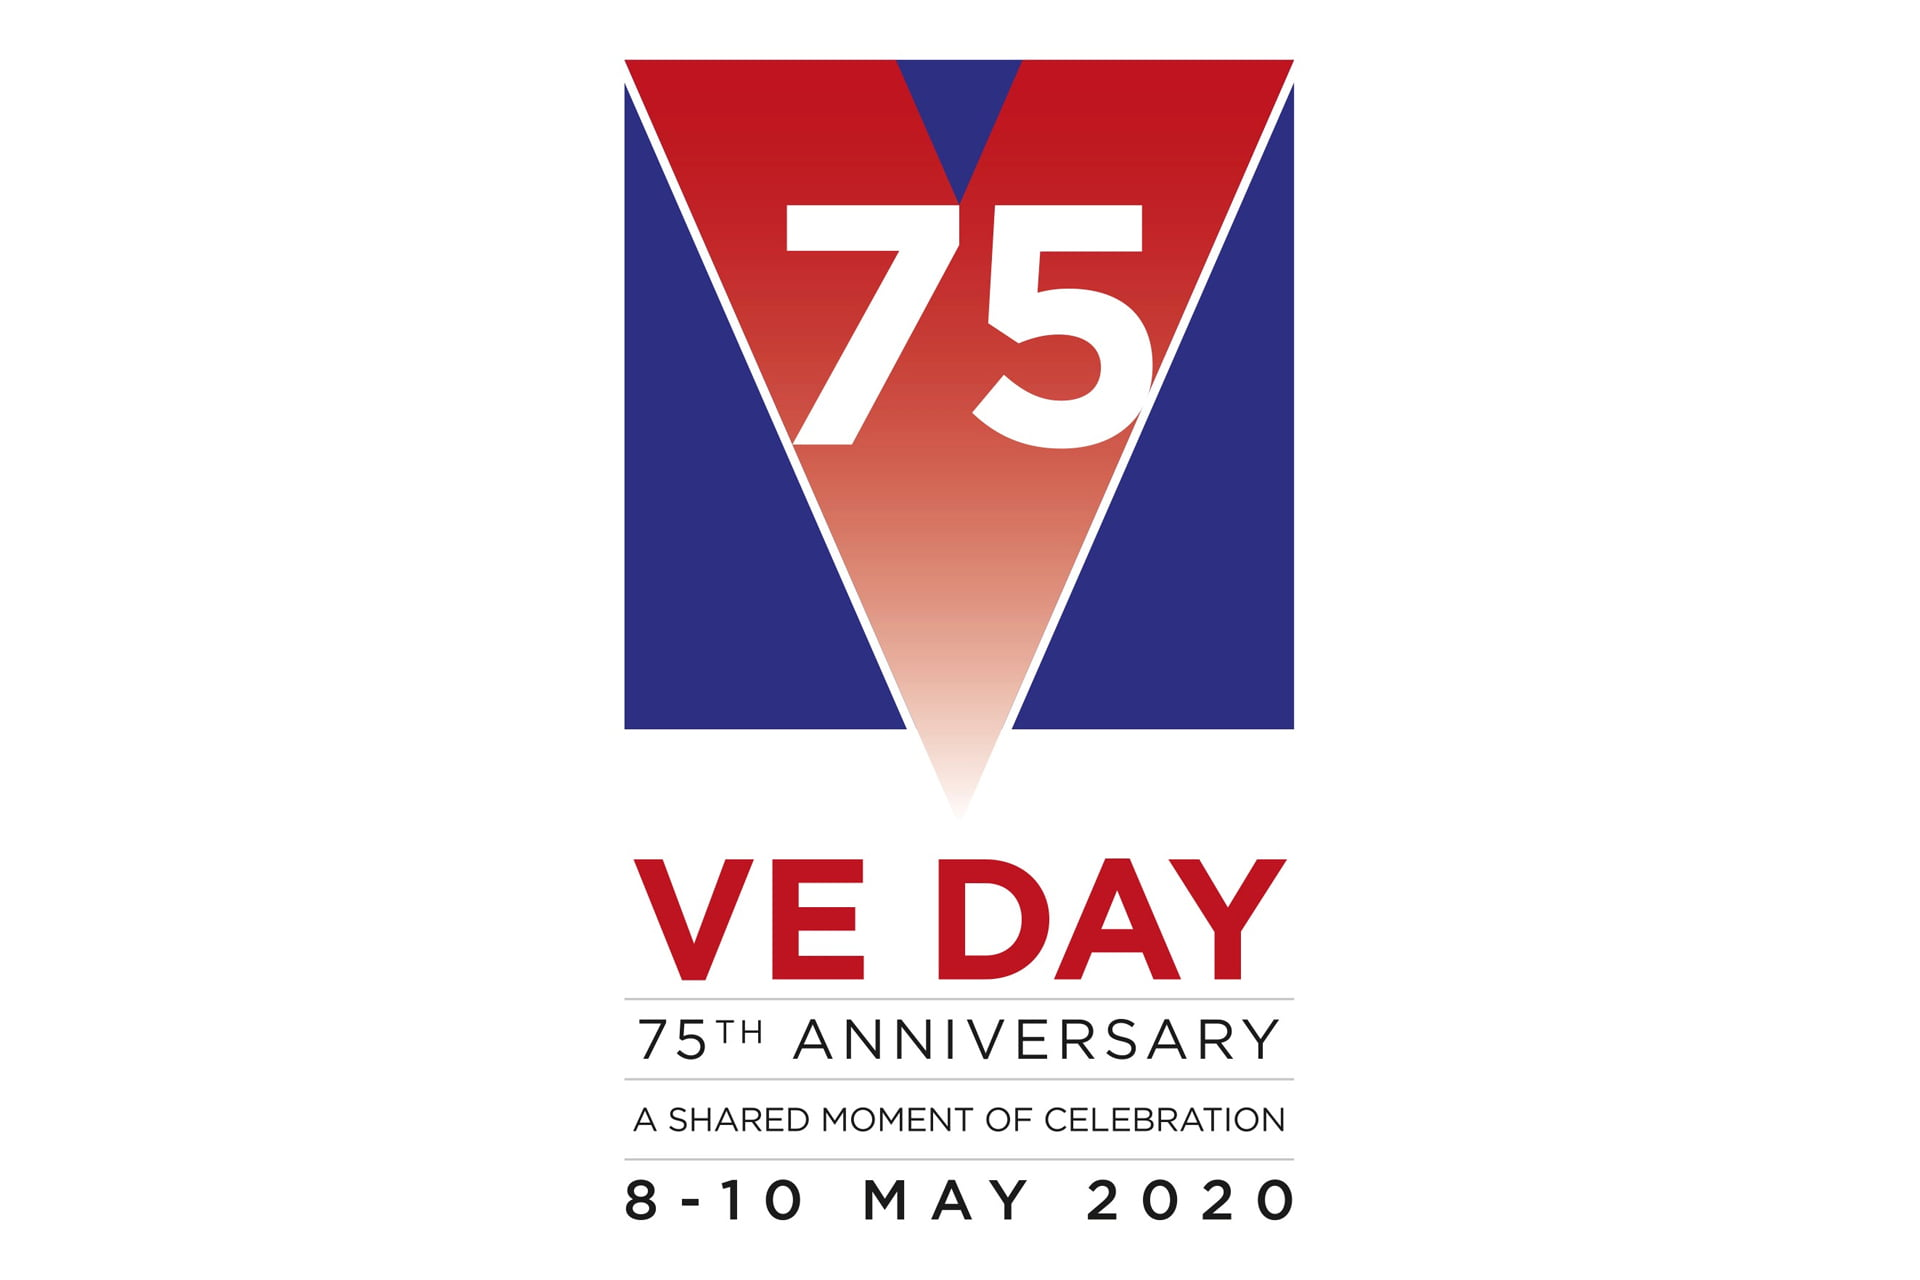 VE Day Anniversary Dates